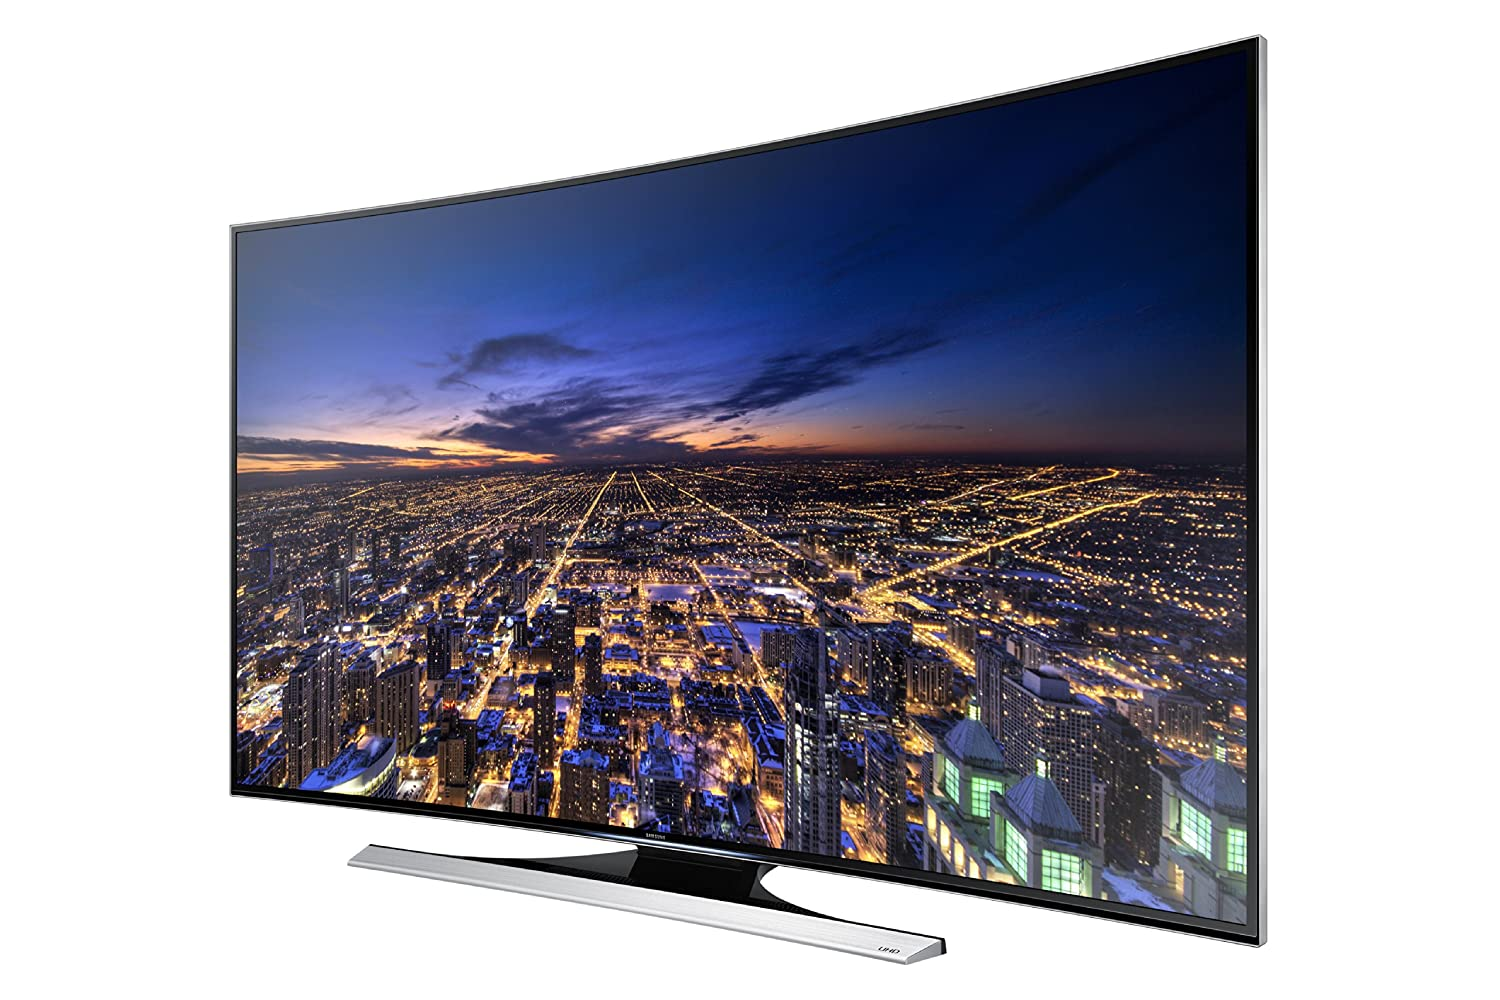 samsung un65hu8700 curved 65 4k 120hz 3d smart led tv 2456 black friday central. Black Bedroom Furniture Sets. Home Design Ideas